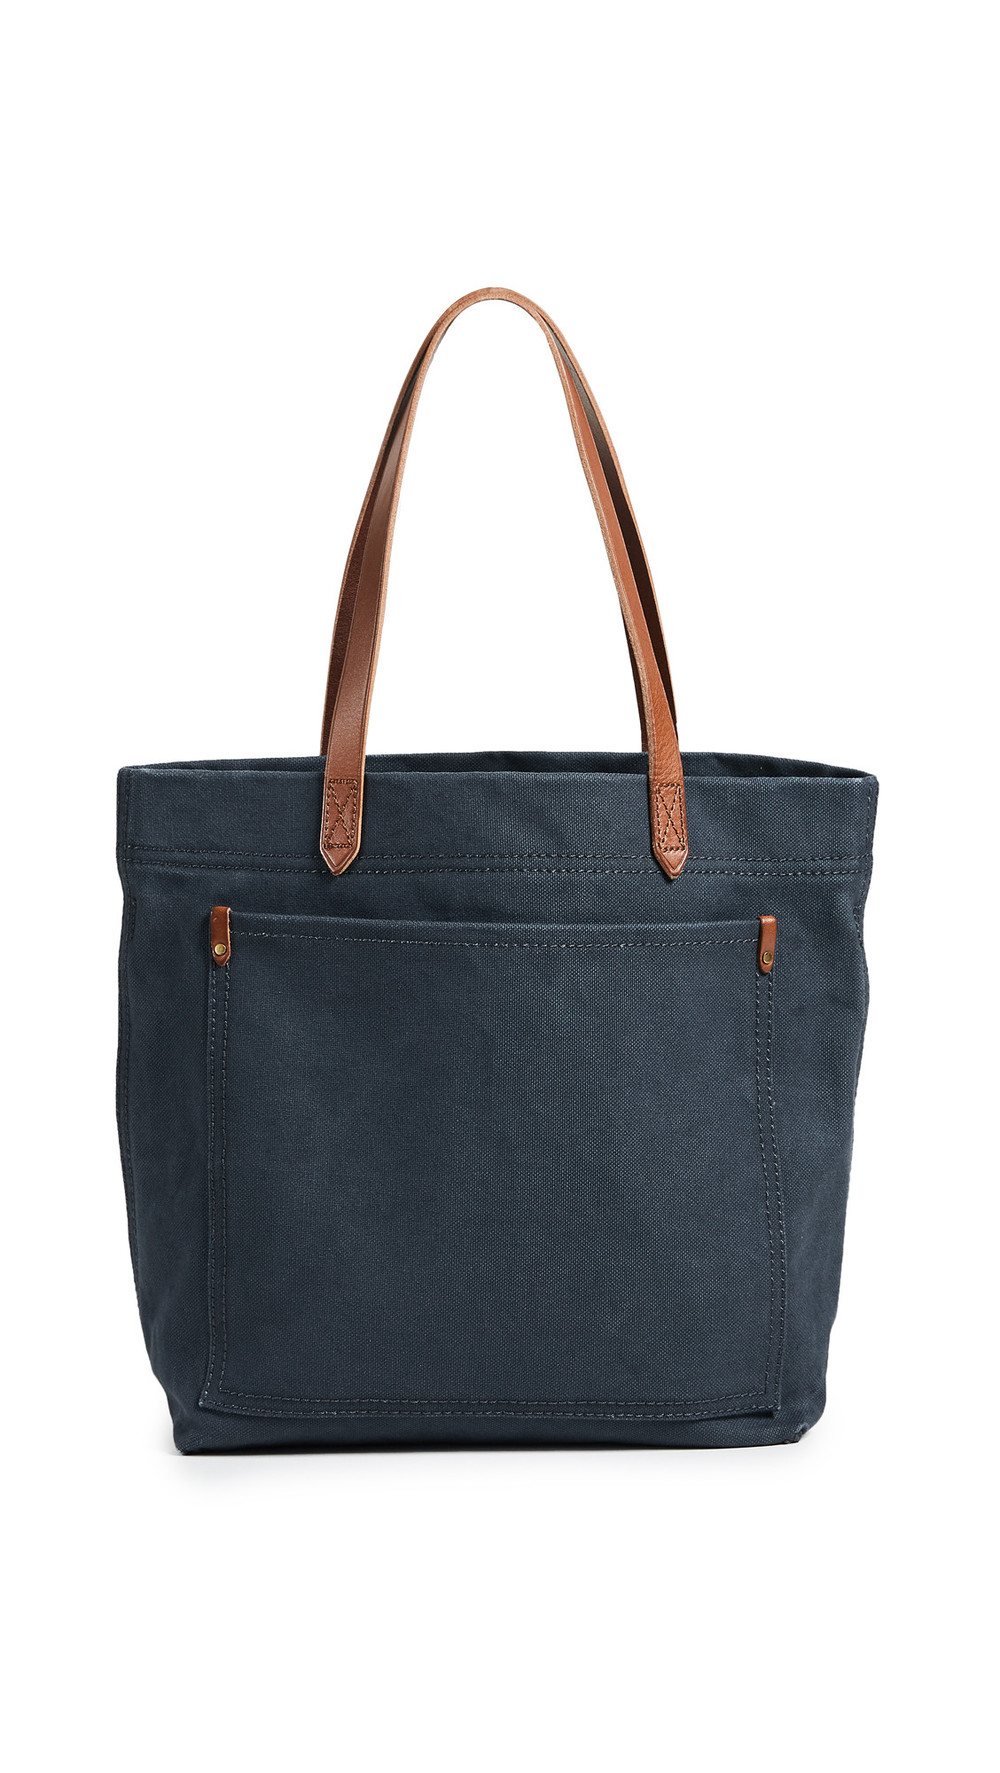 Madewell Medium Transport Tote in Canvas in black